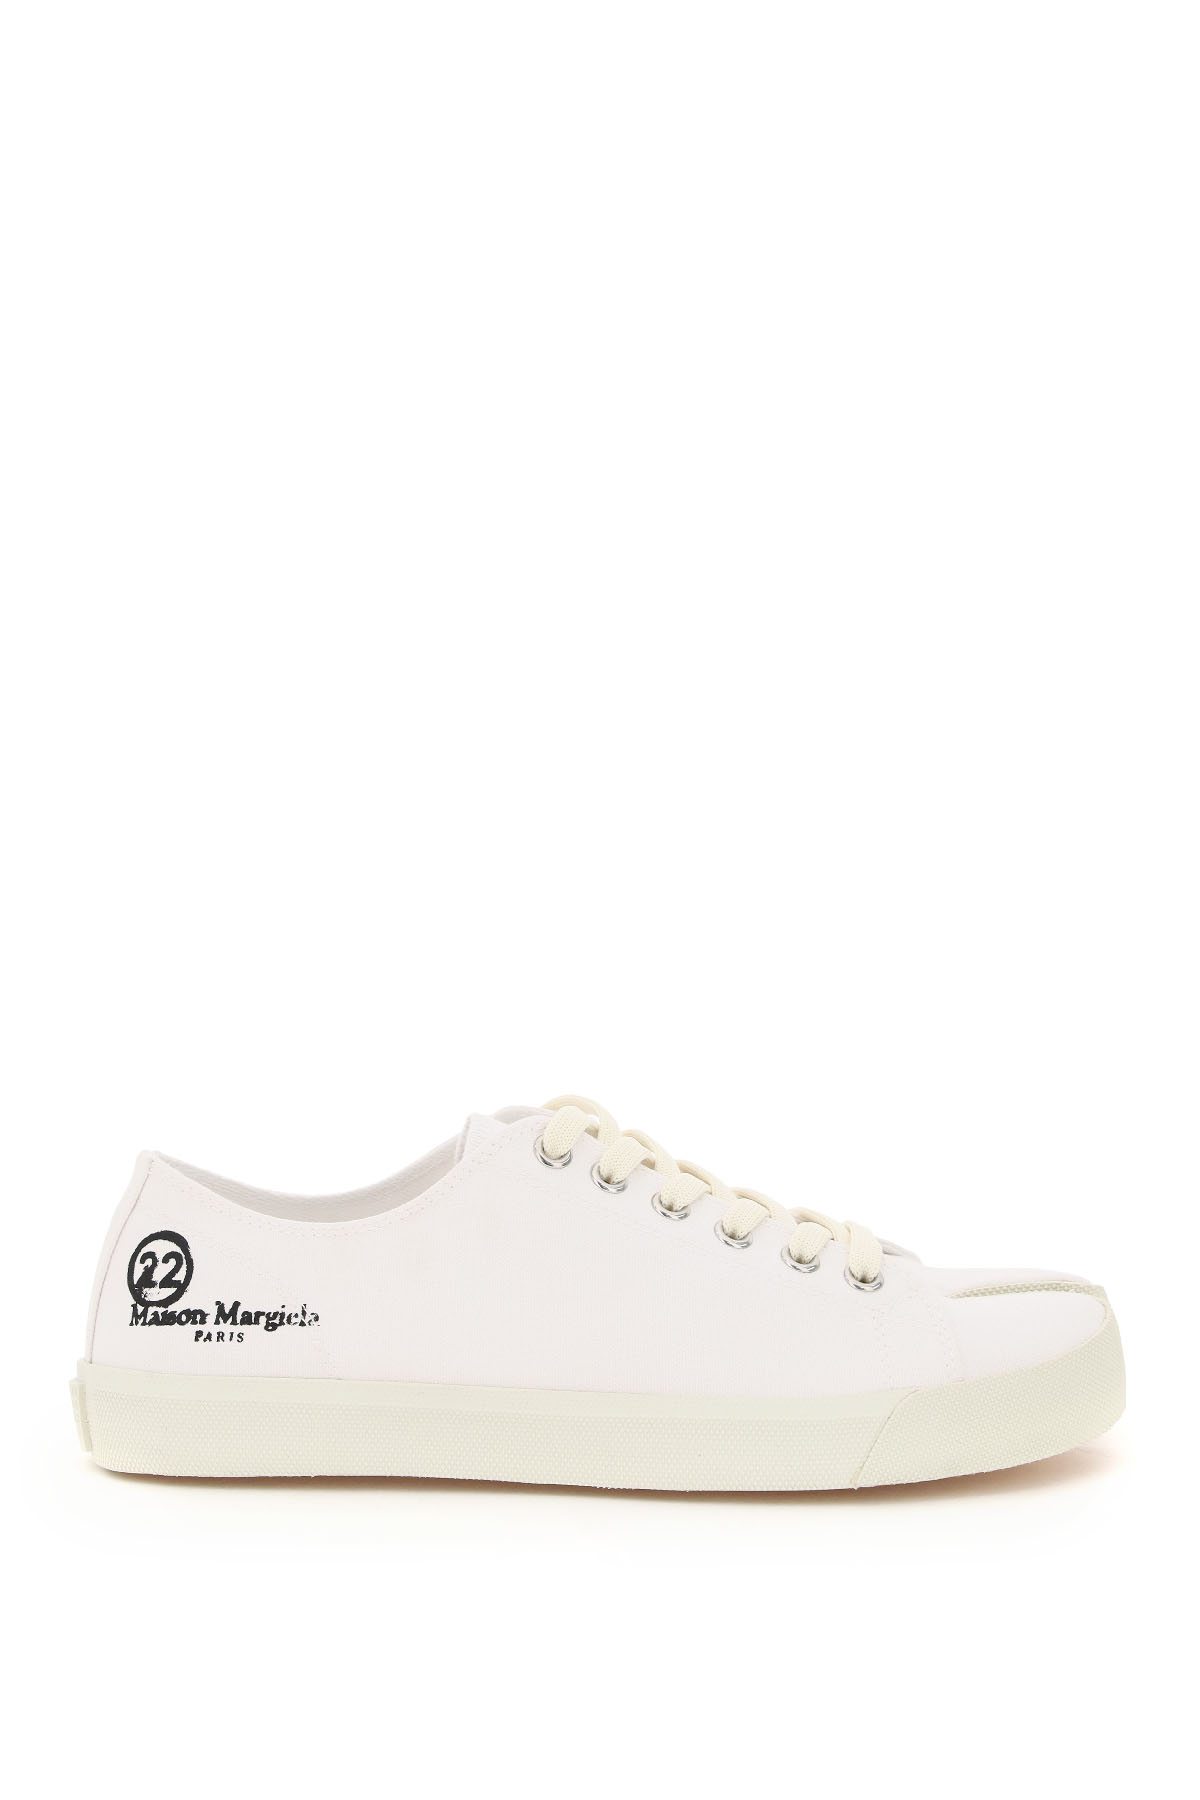 Maison Margiela Canvases TABI CANVAS SNEAKERS